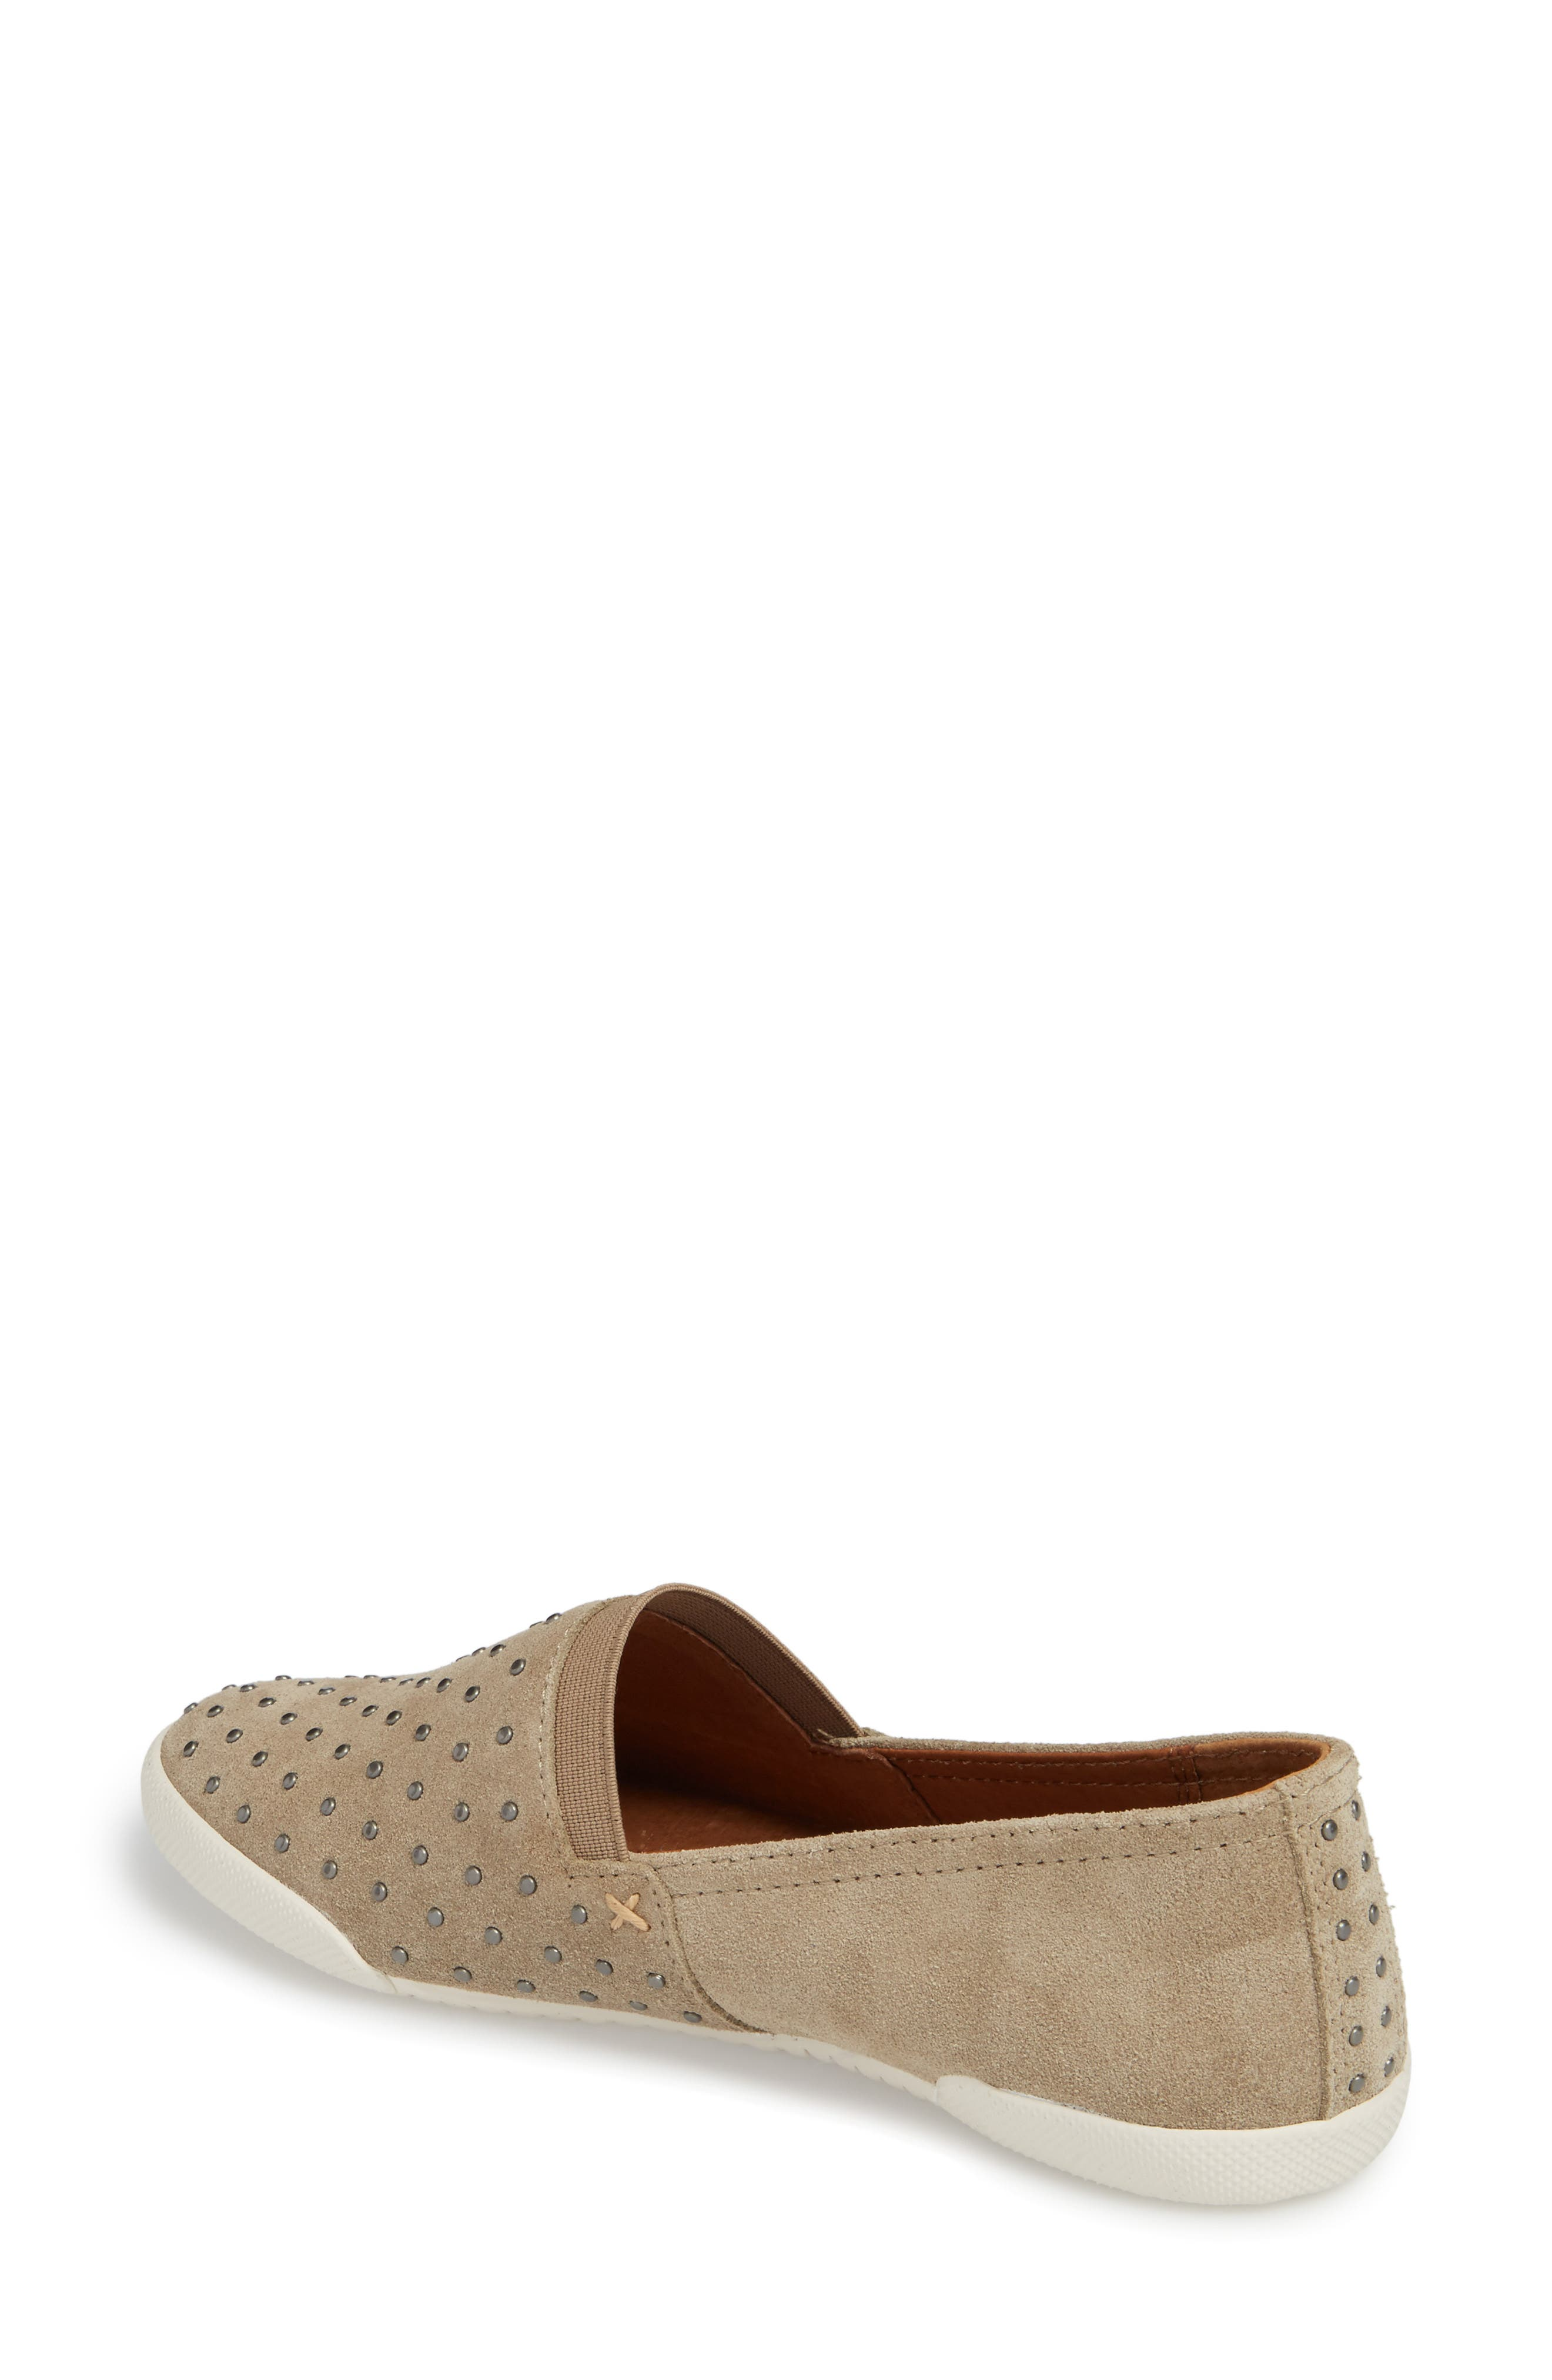 Alternate Image 2  - Frye Melanie Stud Slip-On Sneaker (Women)